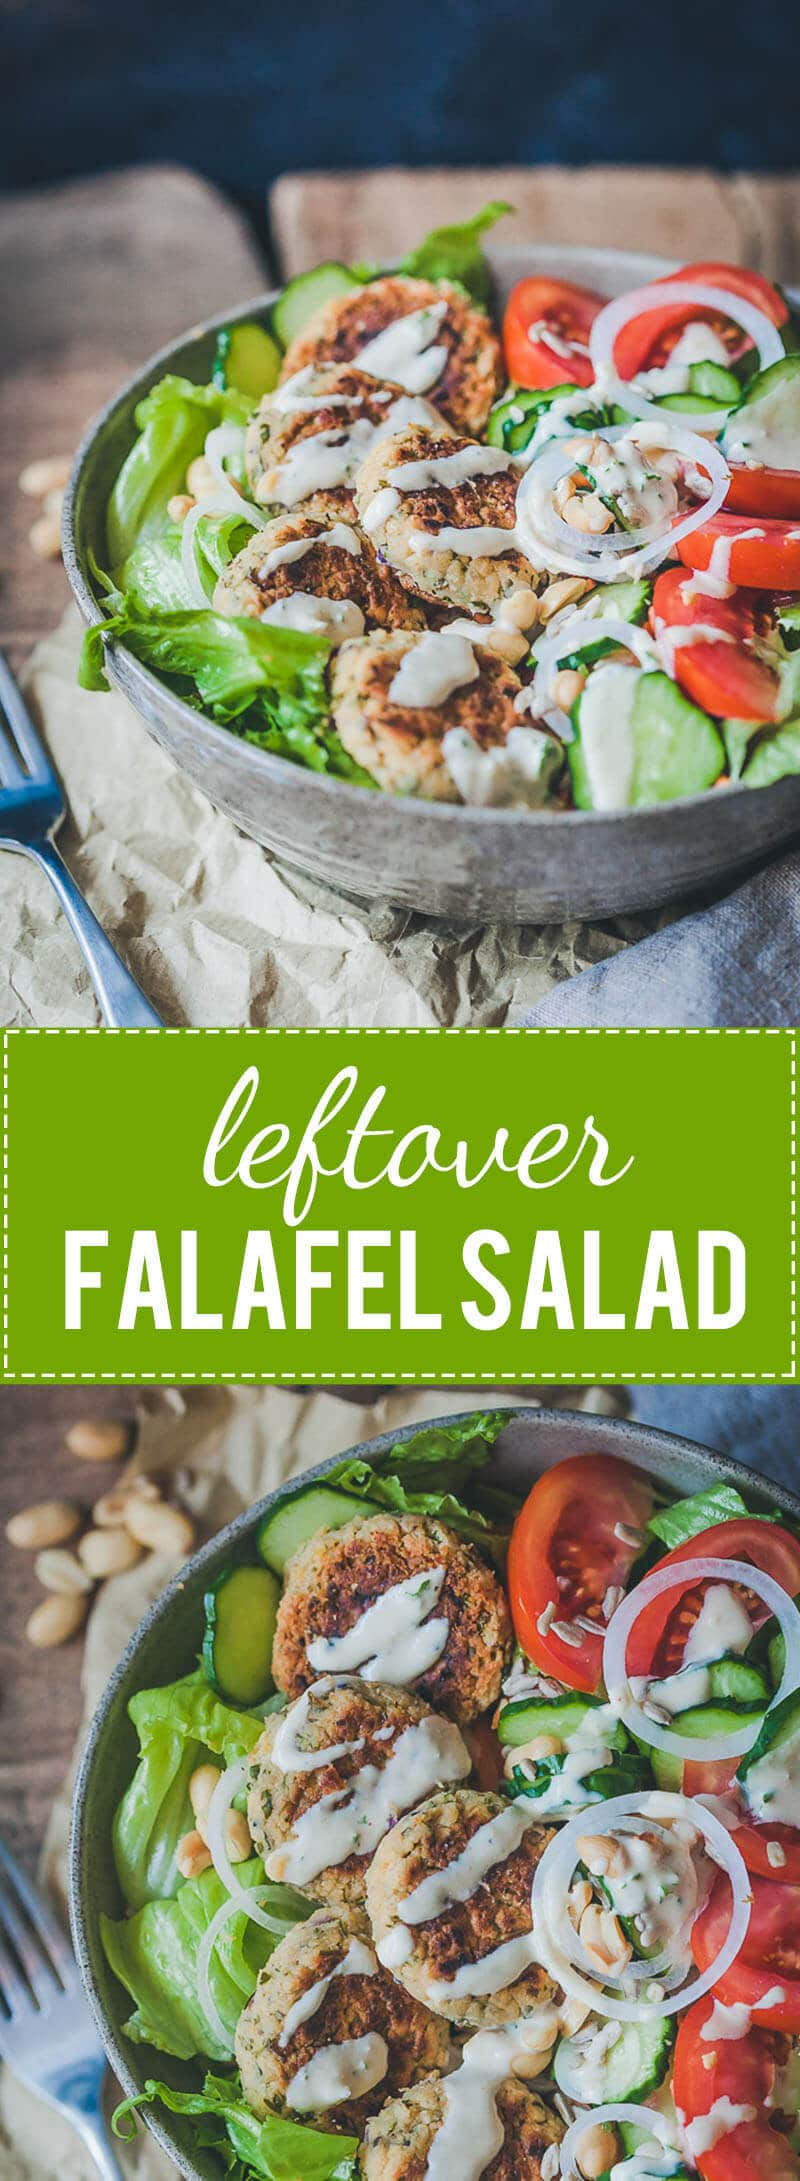 Leftover Falafel Salad with Lemon Tahini Dressing is an easy 30-minute meal using leftover falafel patties. Vegan & Delicious!